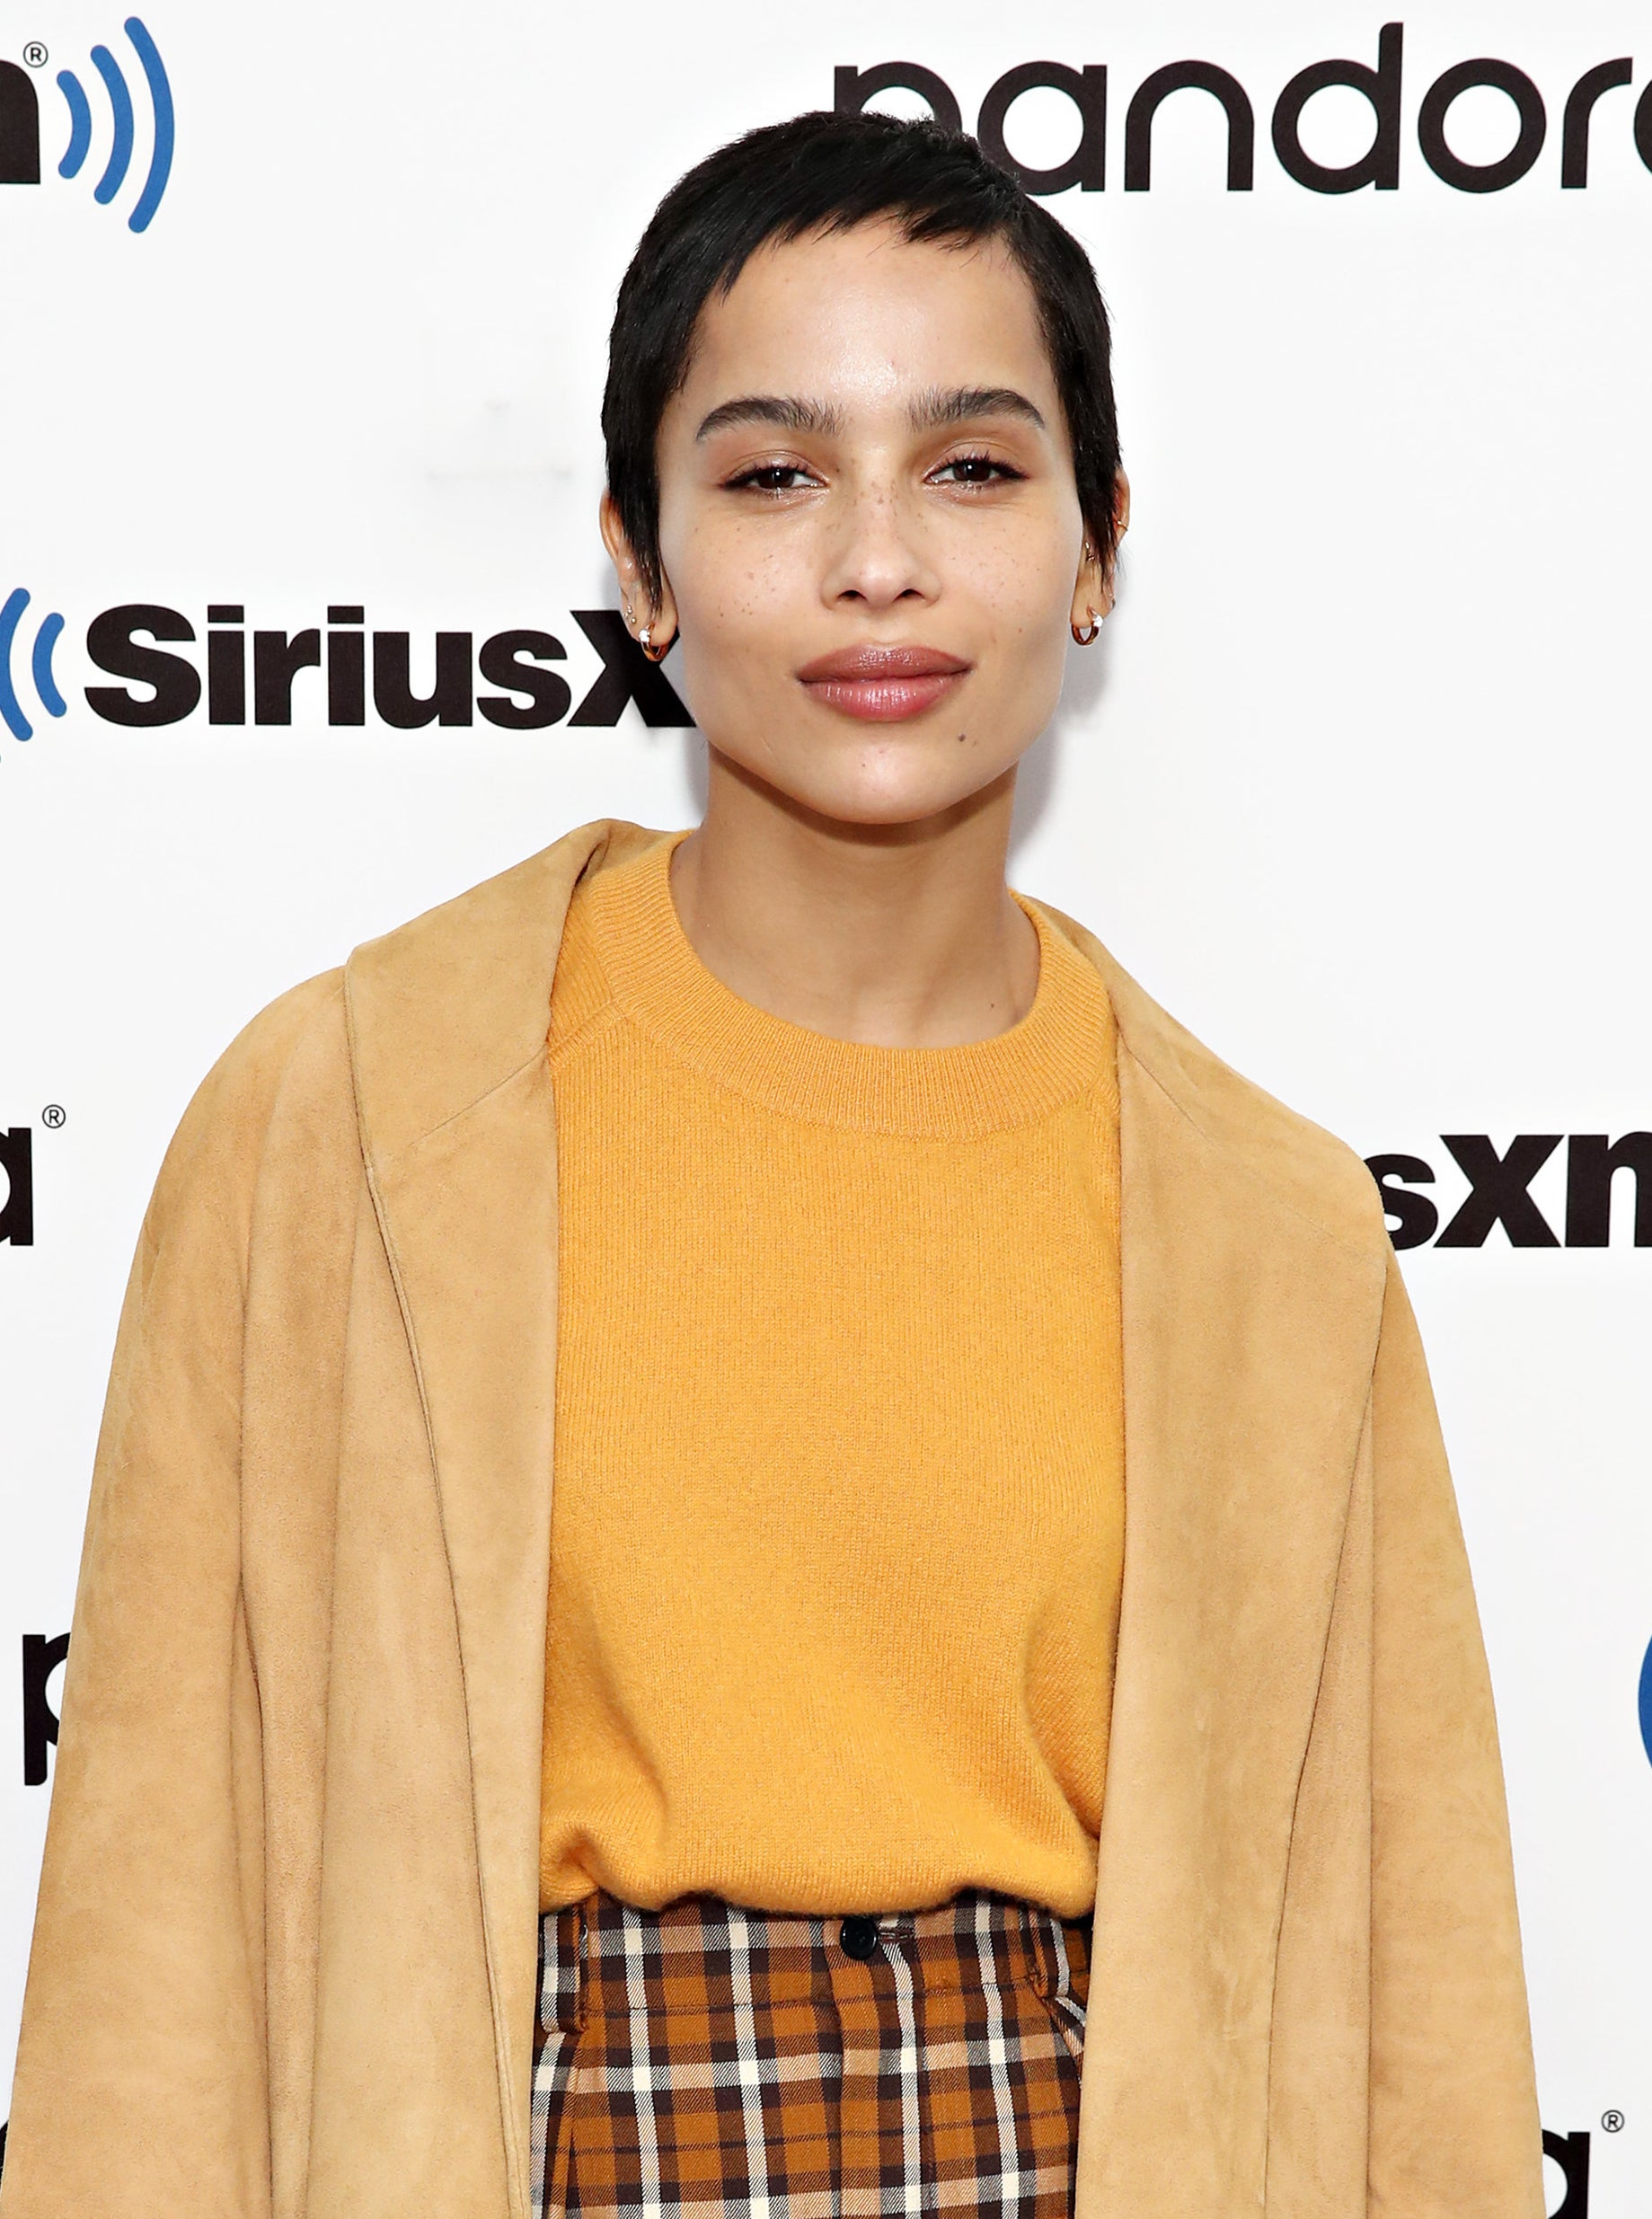 Zoe Kravitz at a red carpet event, with a pixie cut, wearing an orange sweater, plaid bands, and a coat